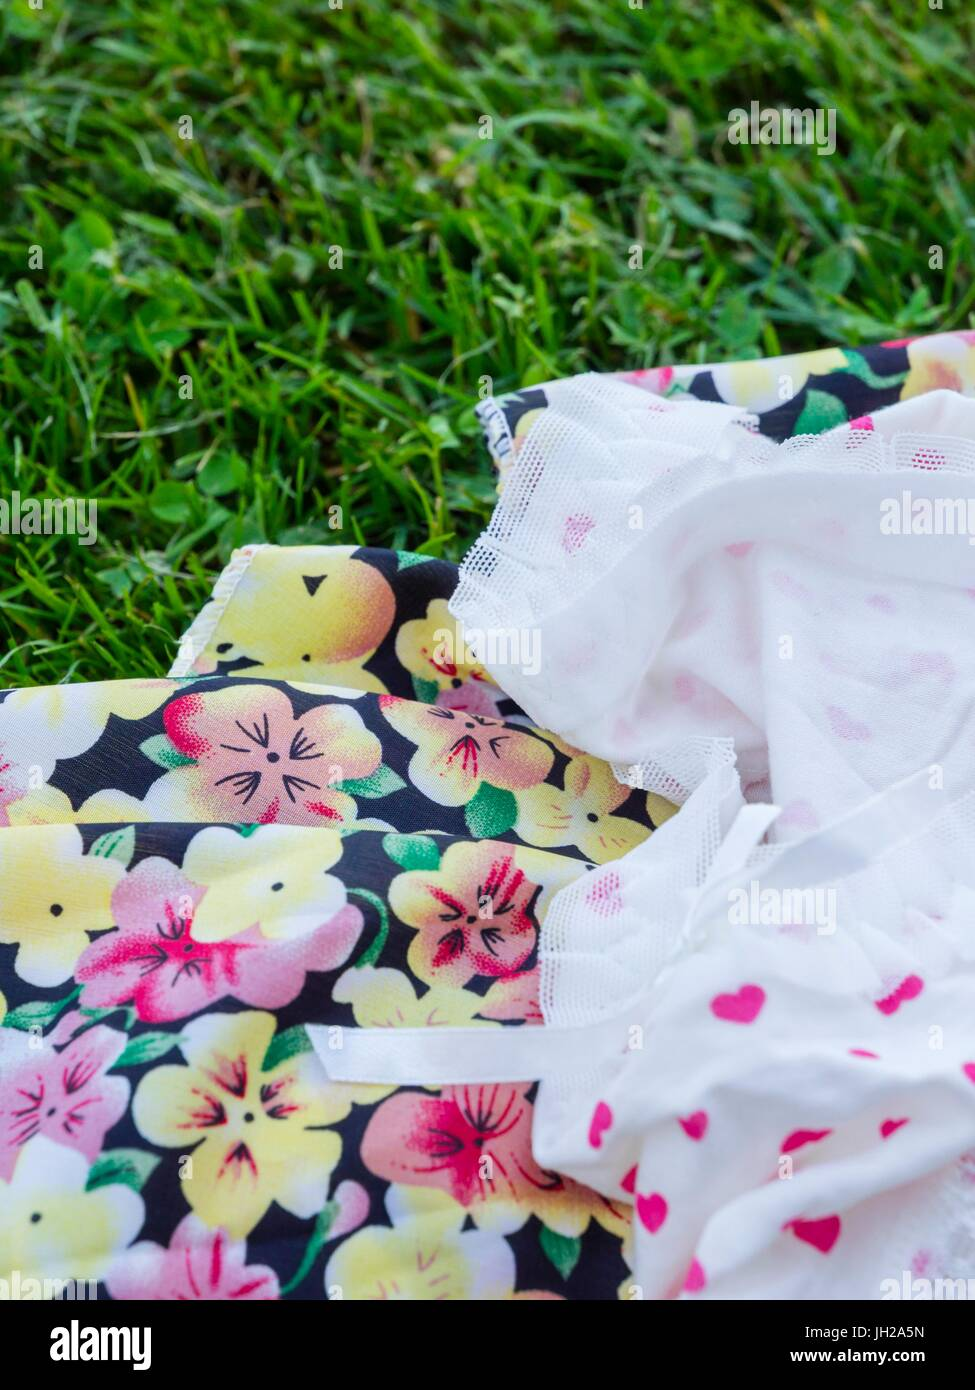 Colorful summer dress and knickers left on grass-field field grass - Stock Image